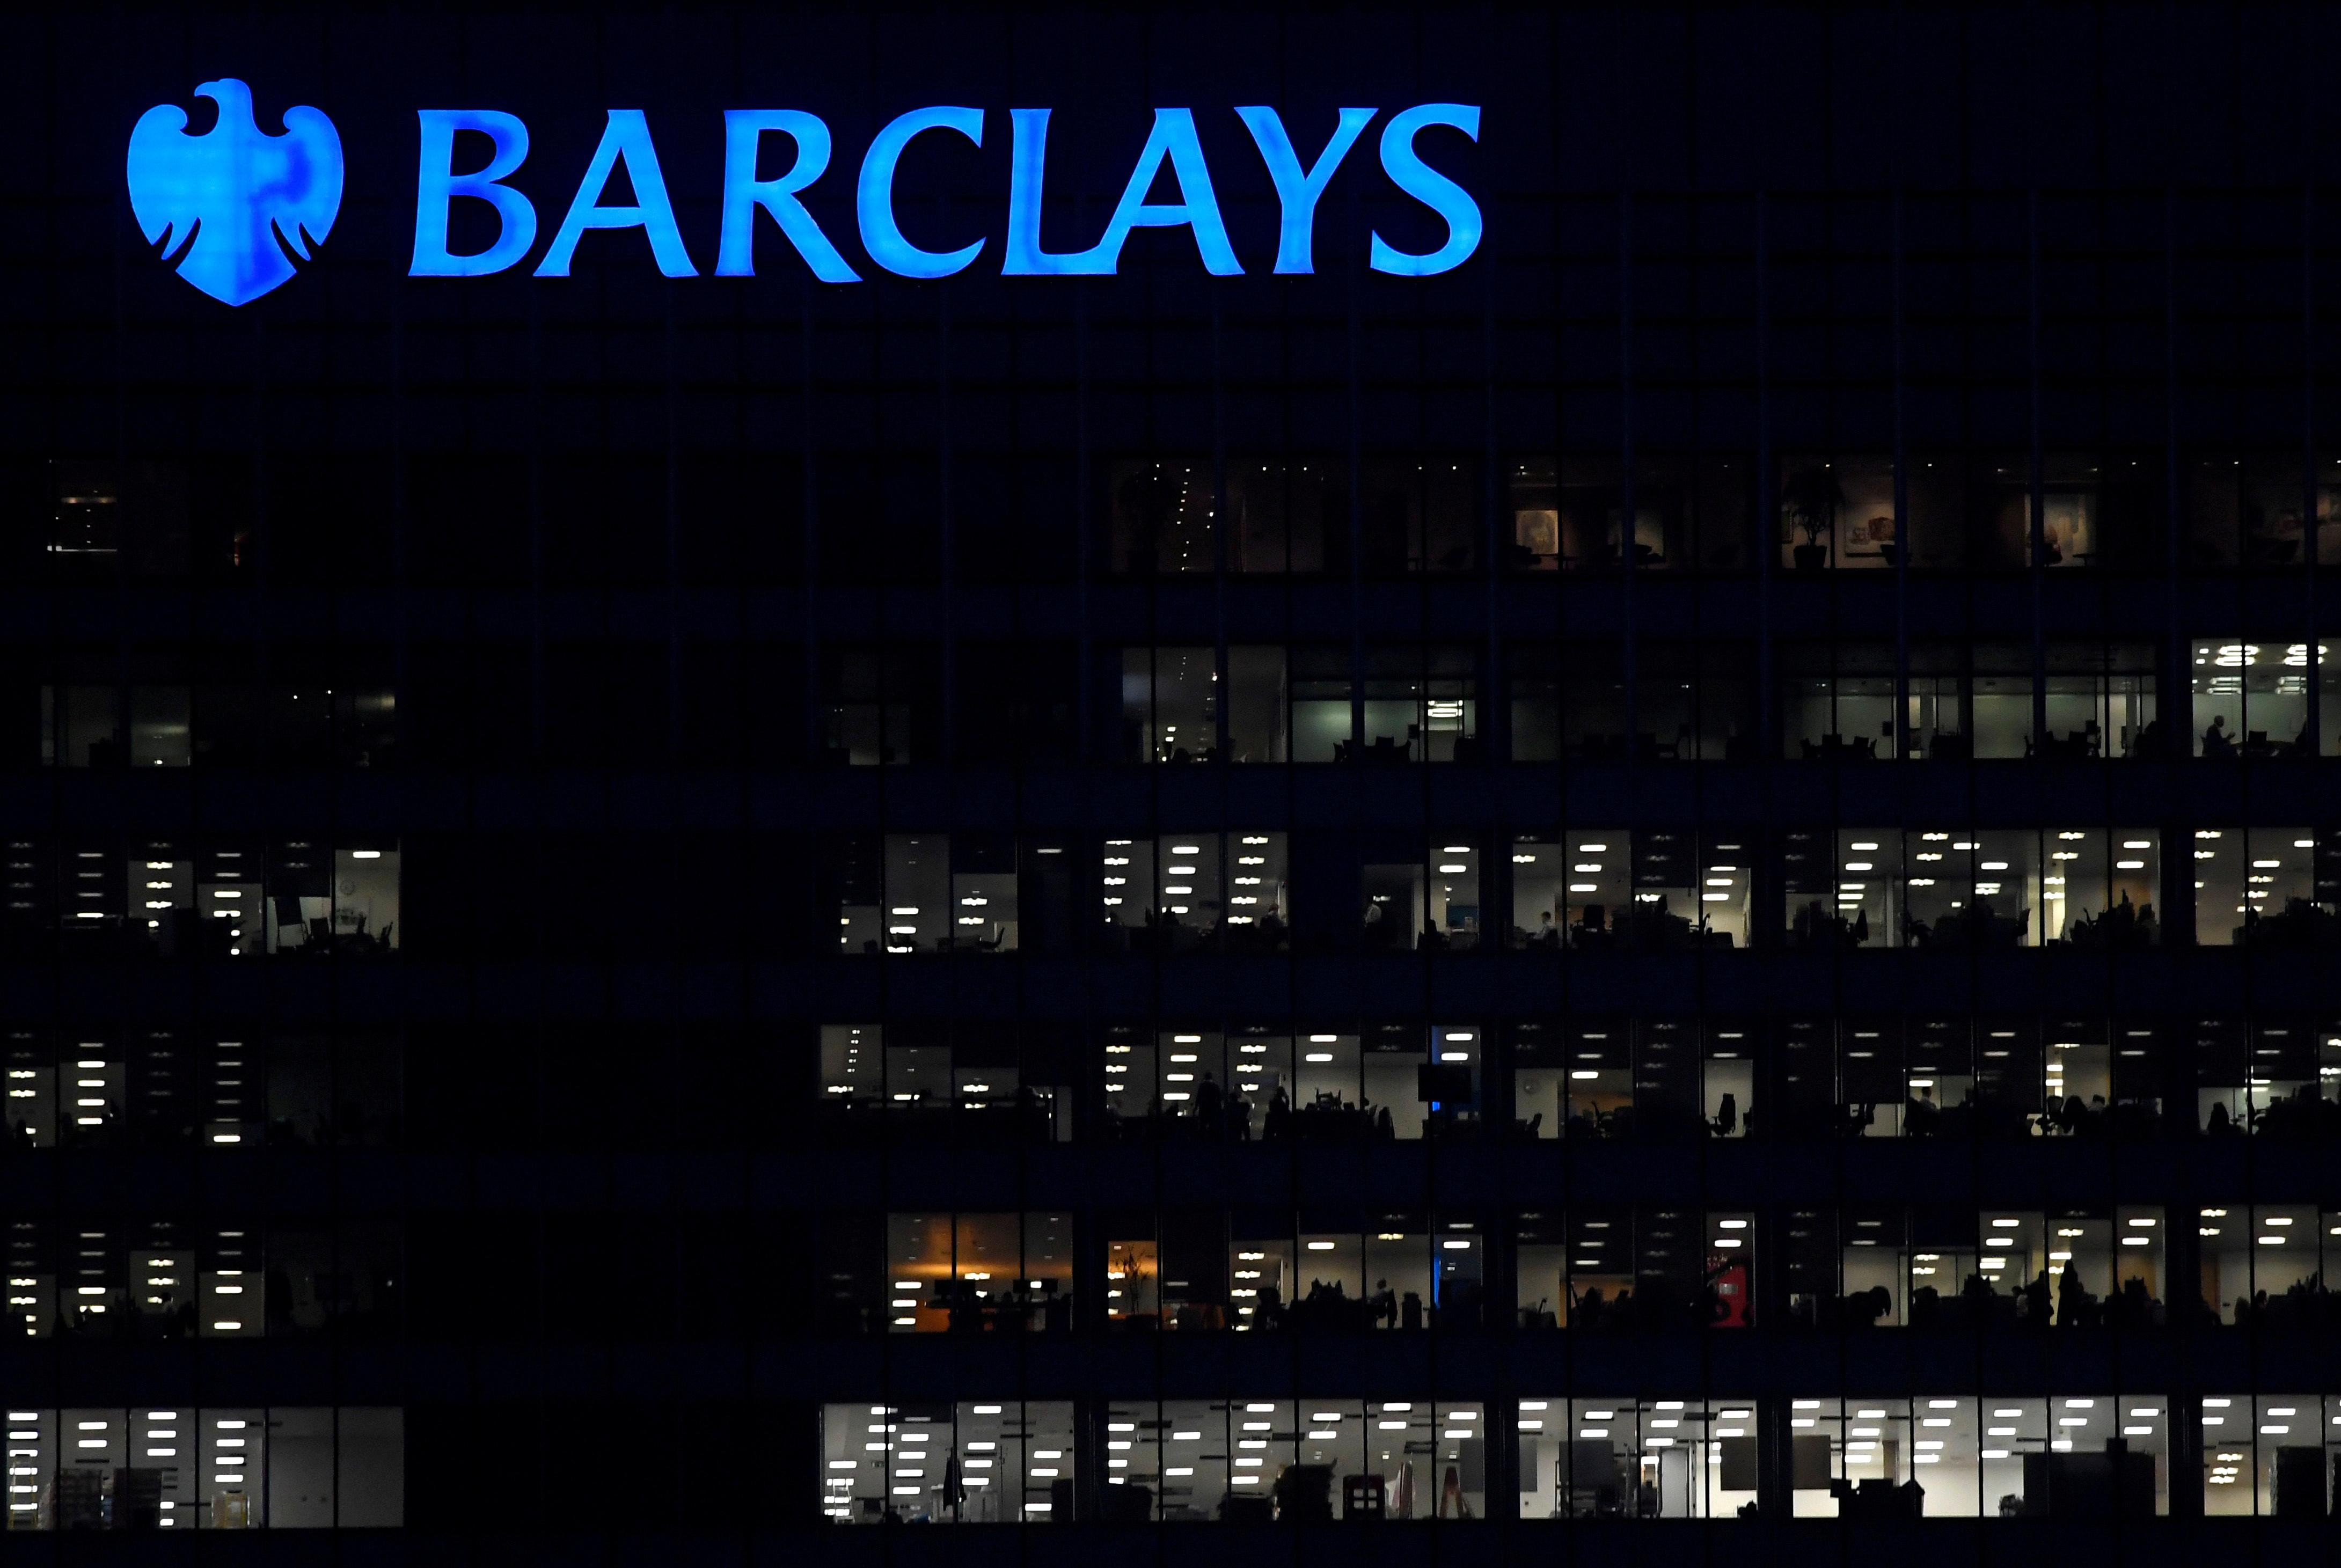 Barclays to restructure 450 jobs, employee union sees heavy layoffs